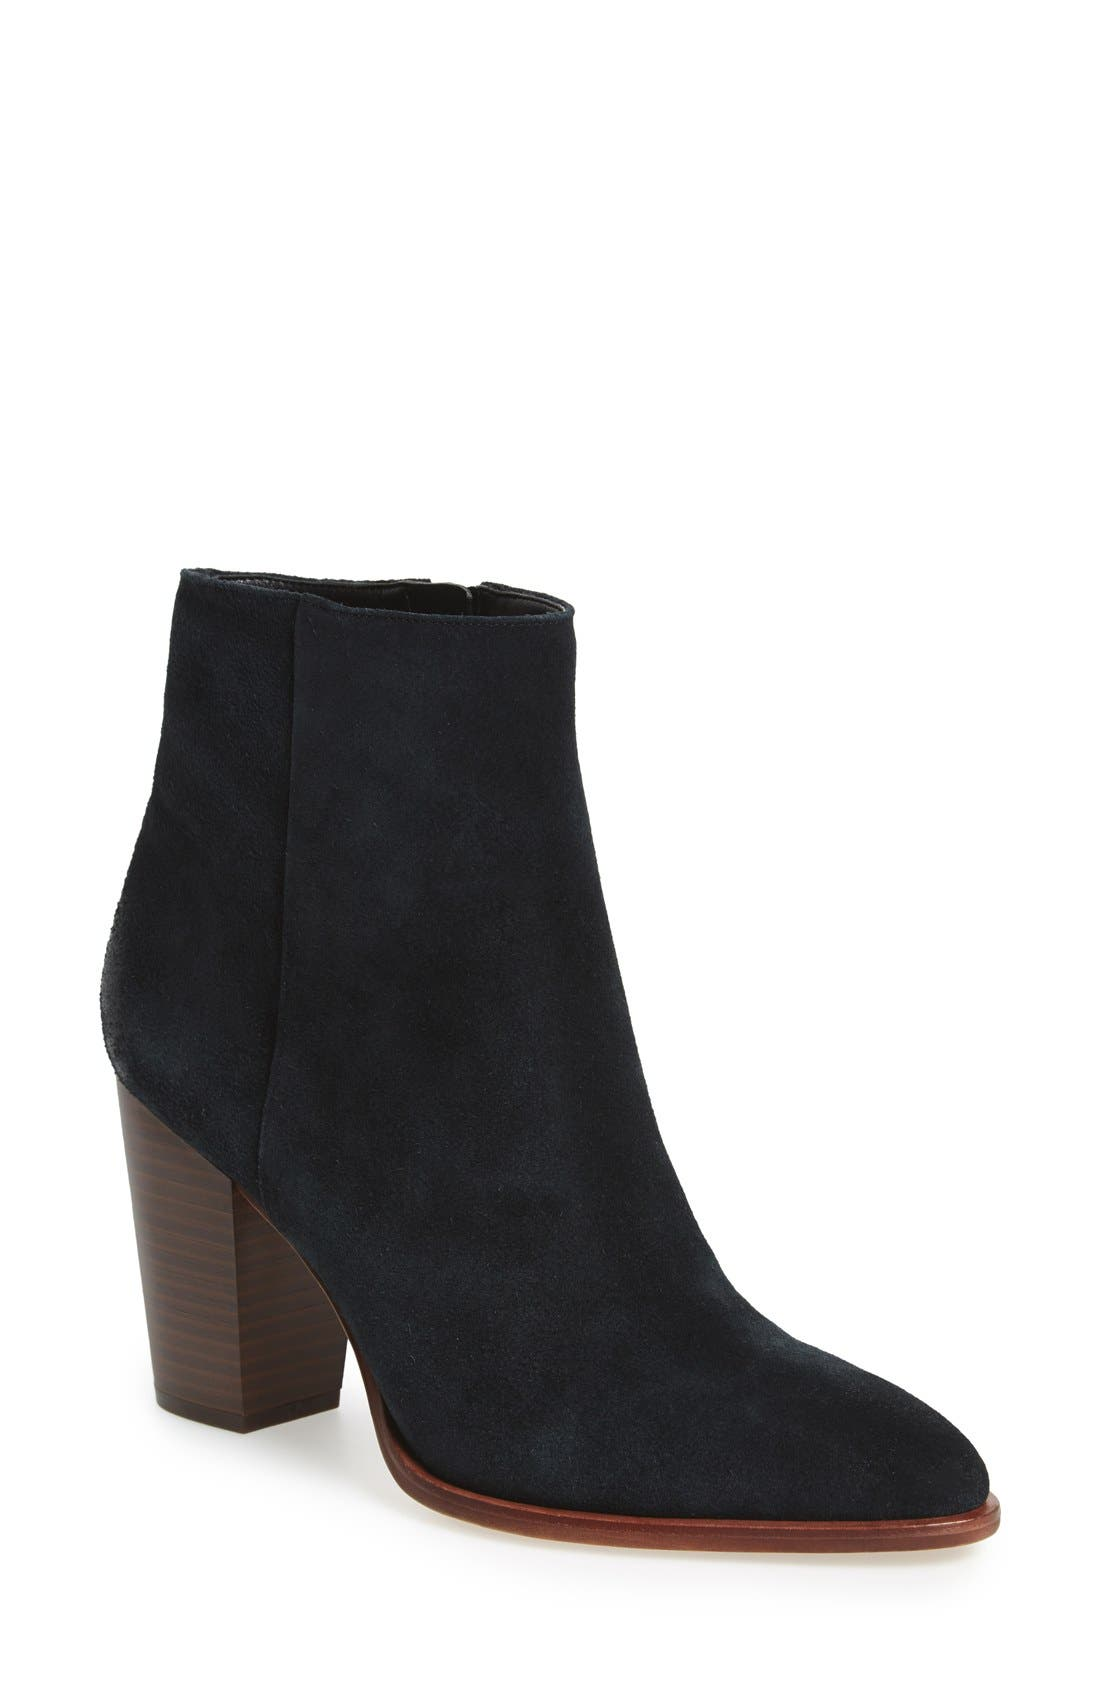 SAM EDELMAN, 'Blake' Bootie, Main thumbnail 1, color, 002